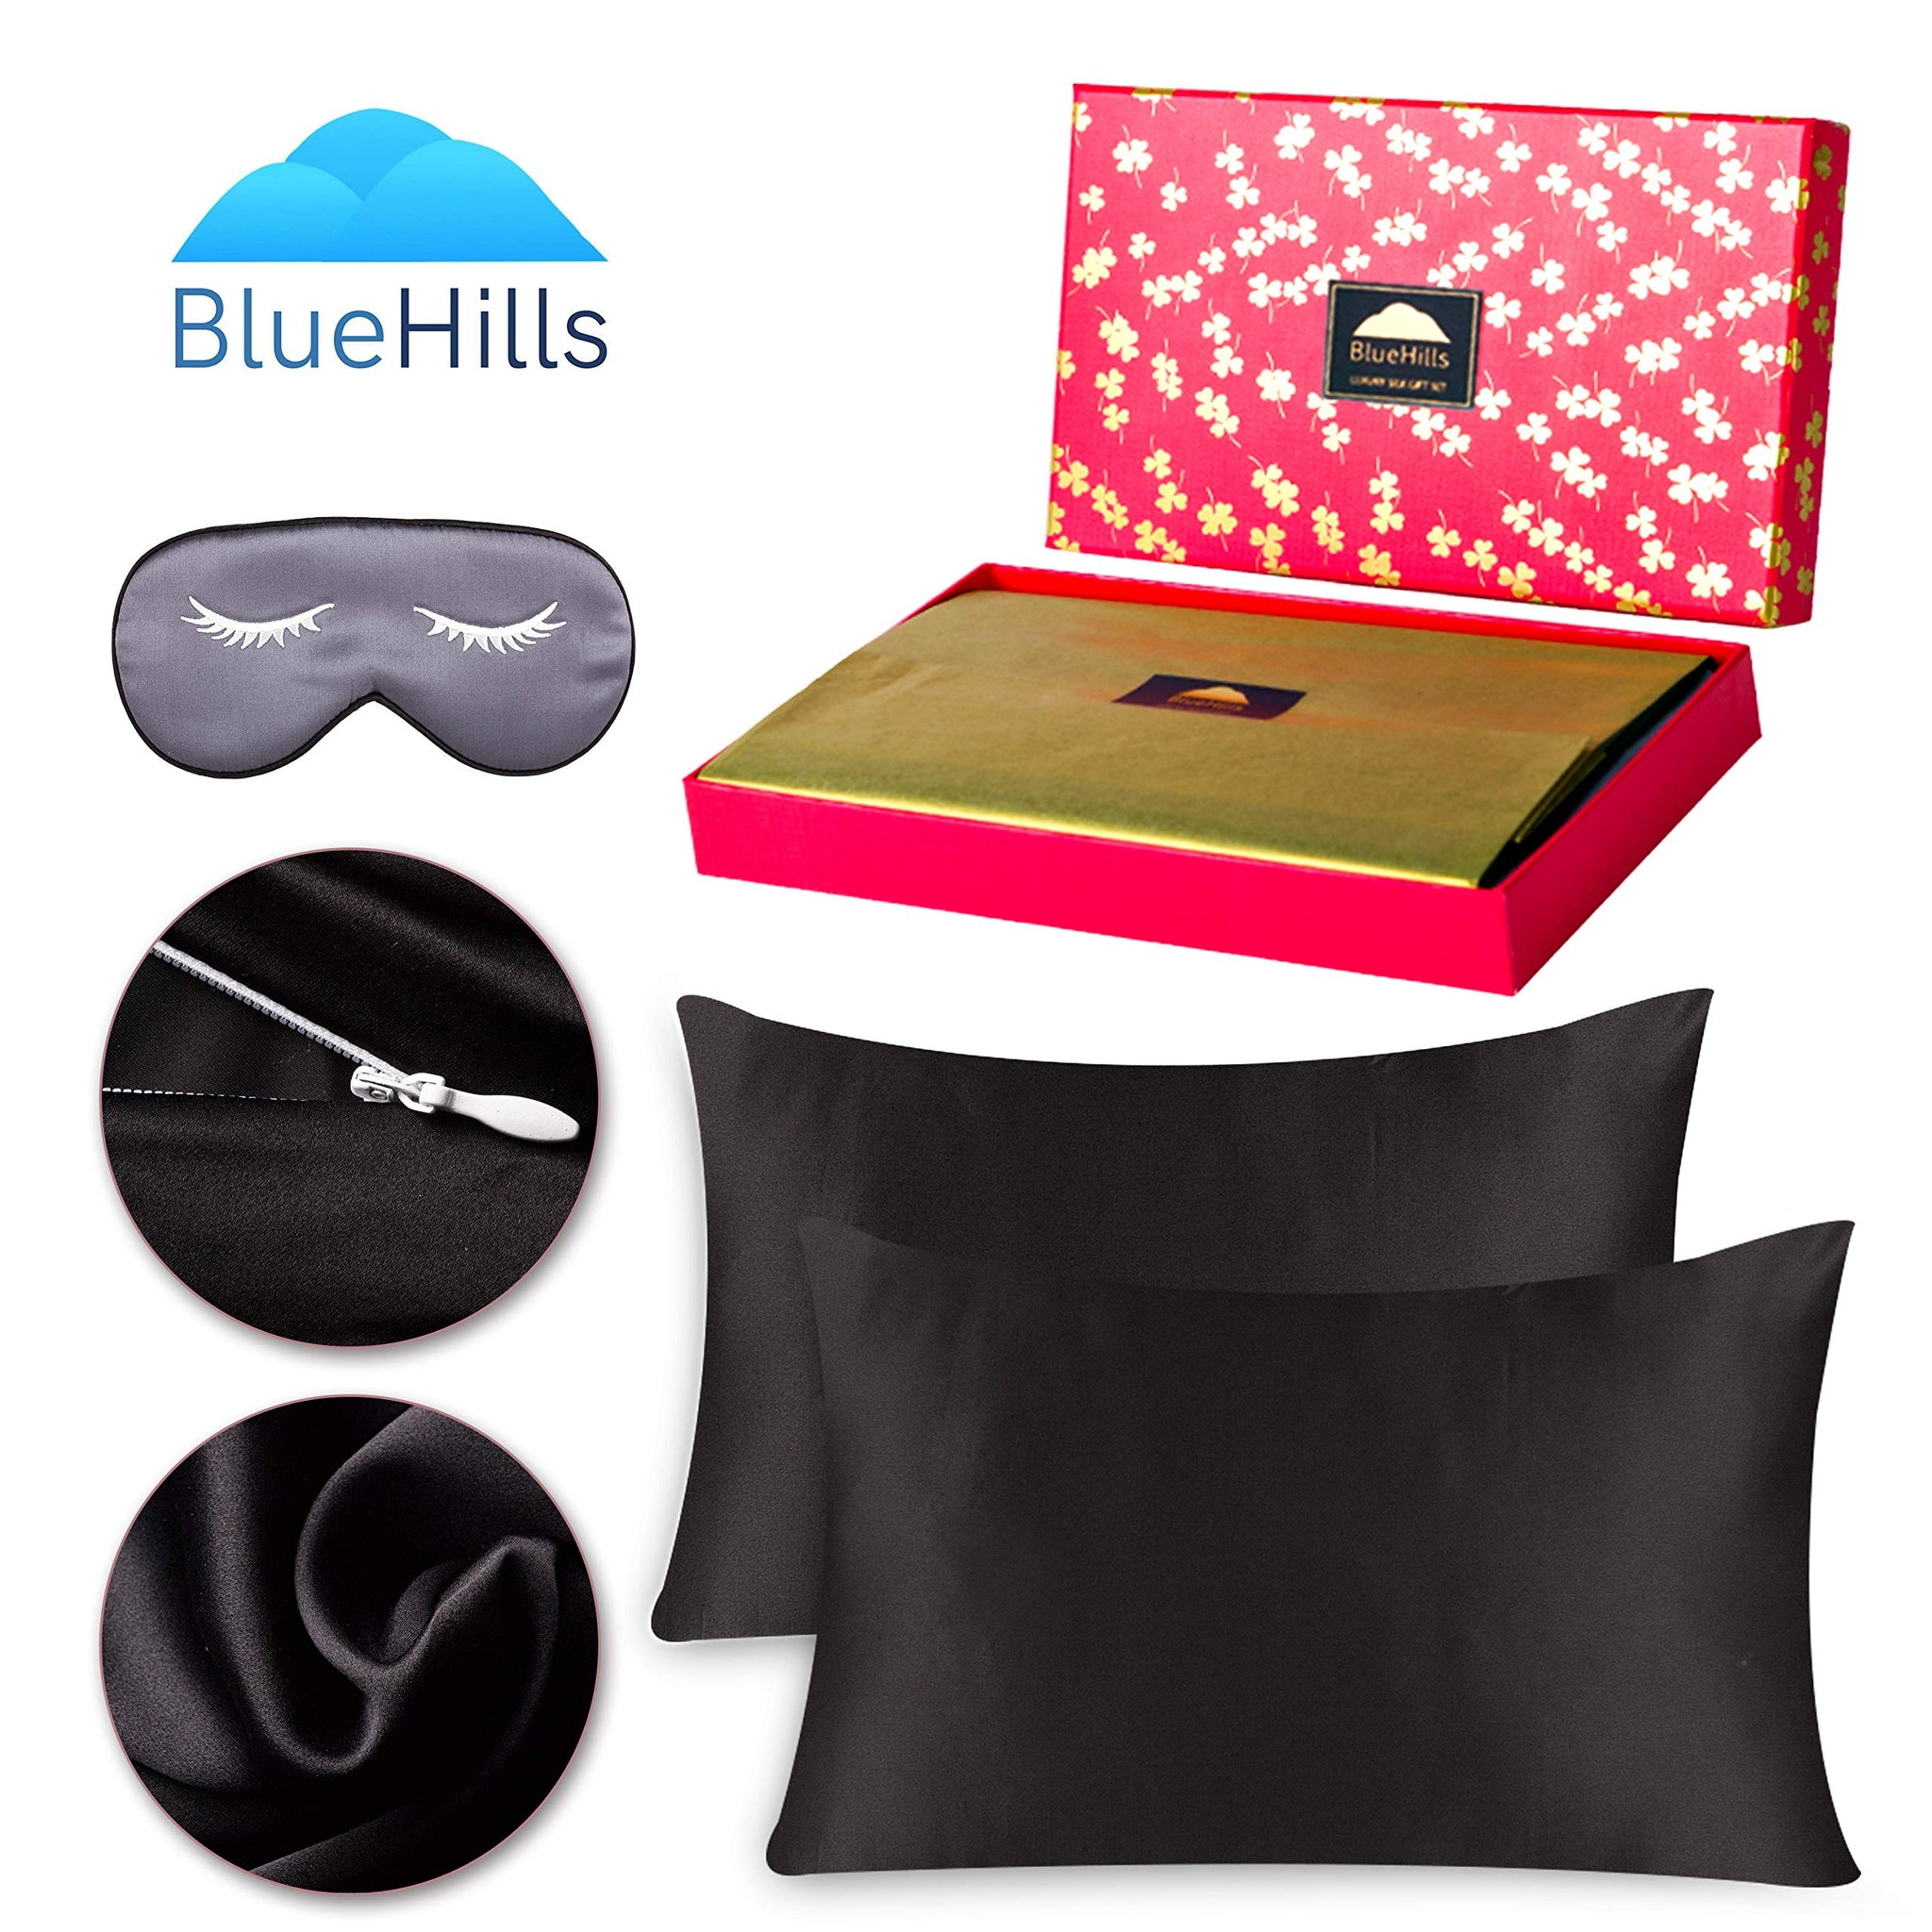 BlueHills Luxury Silk Pillowcase Gift Set - 100% Pure Mulberry Natural Soft Both Sides Silk Pillowcase 2 Pack for Hair and Skin & 1 Pure Silk Eye Mask Gift Box 3 Piece Set Black Color Standard S009